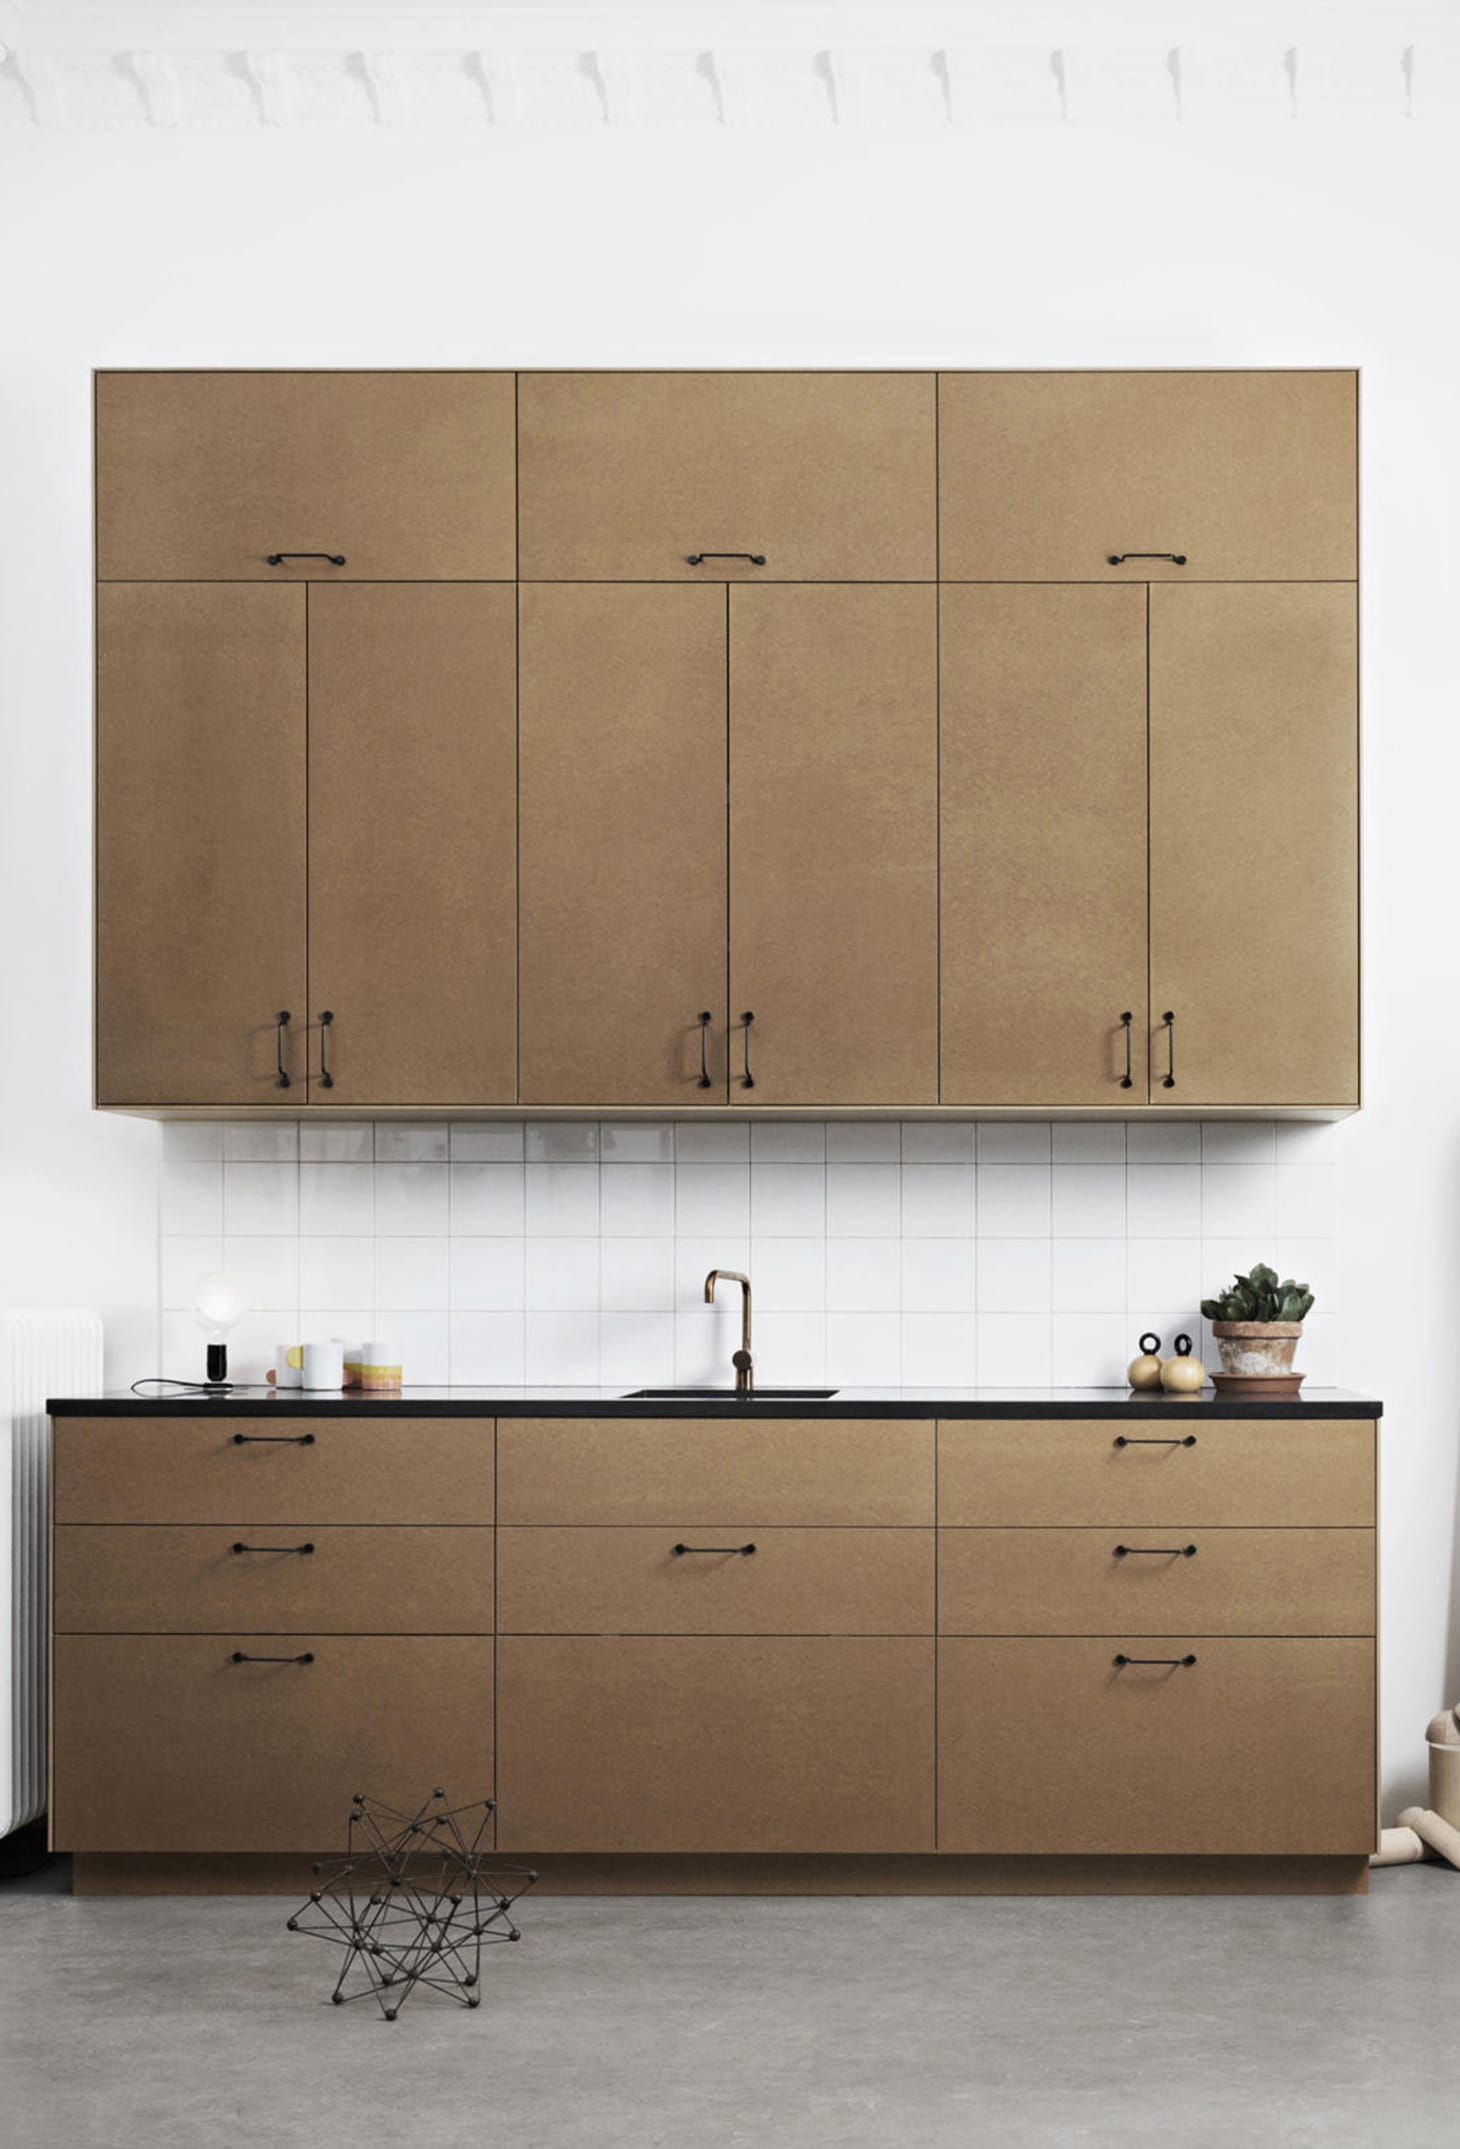 IKEA Kitchen Cabinets: Guide to Custom Doors + Fronts ...